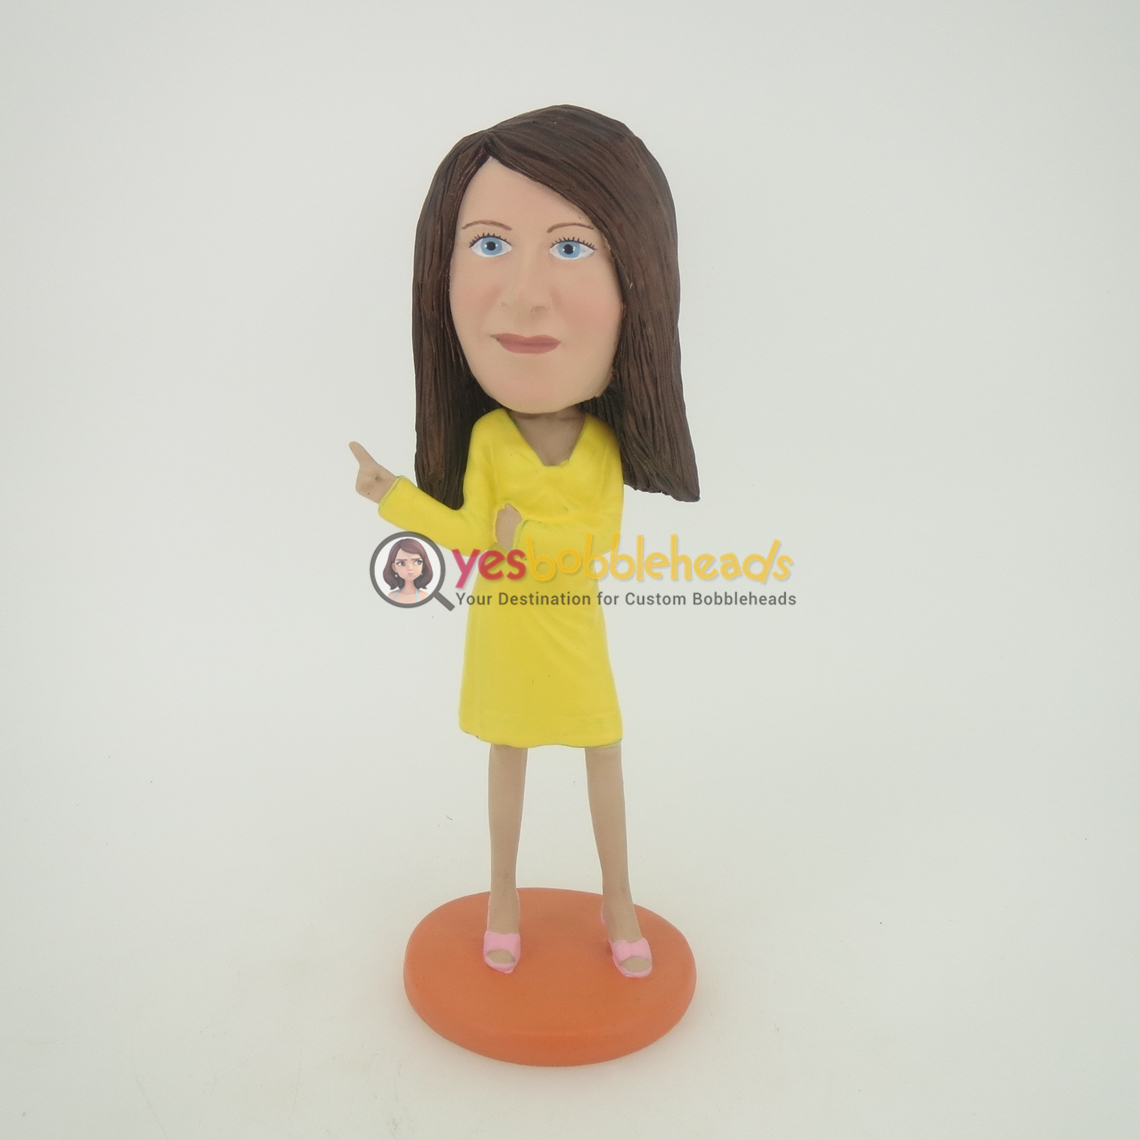 Picture of Custom Bobblehead Doll: Woman with Yellow Dress